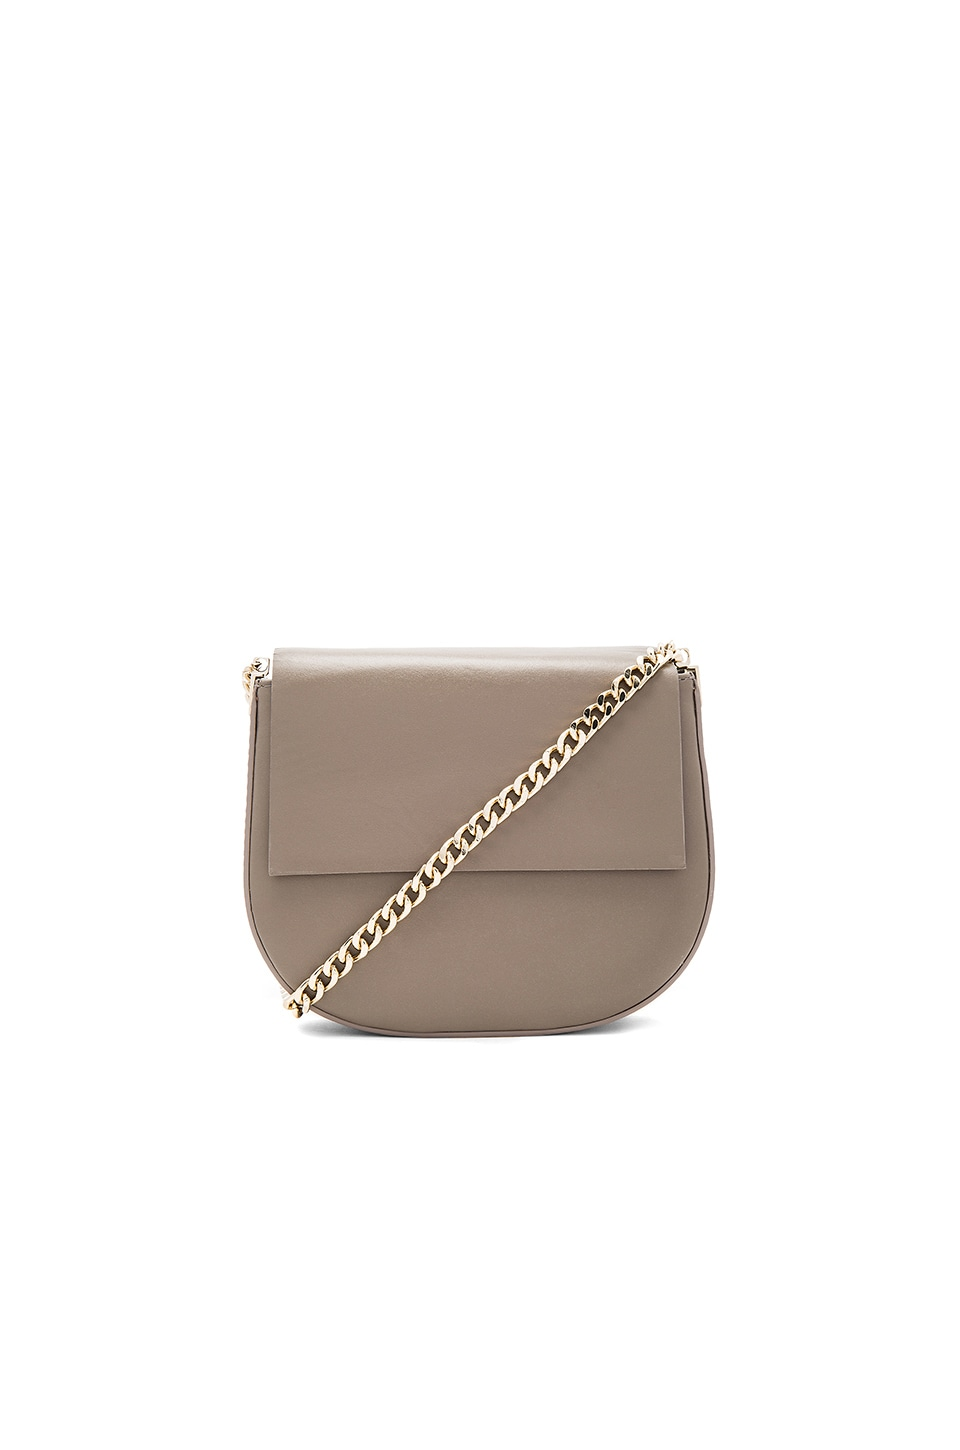 Gvyn Lou 2.0 Shoulder Bag in Taupe & Gold